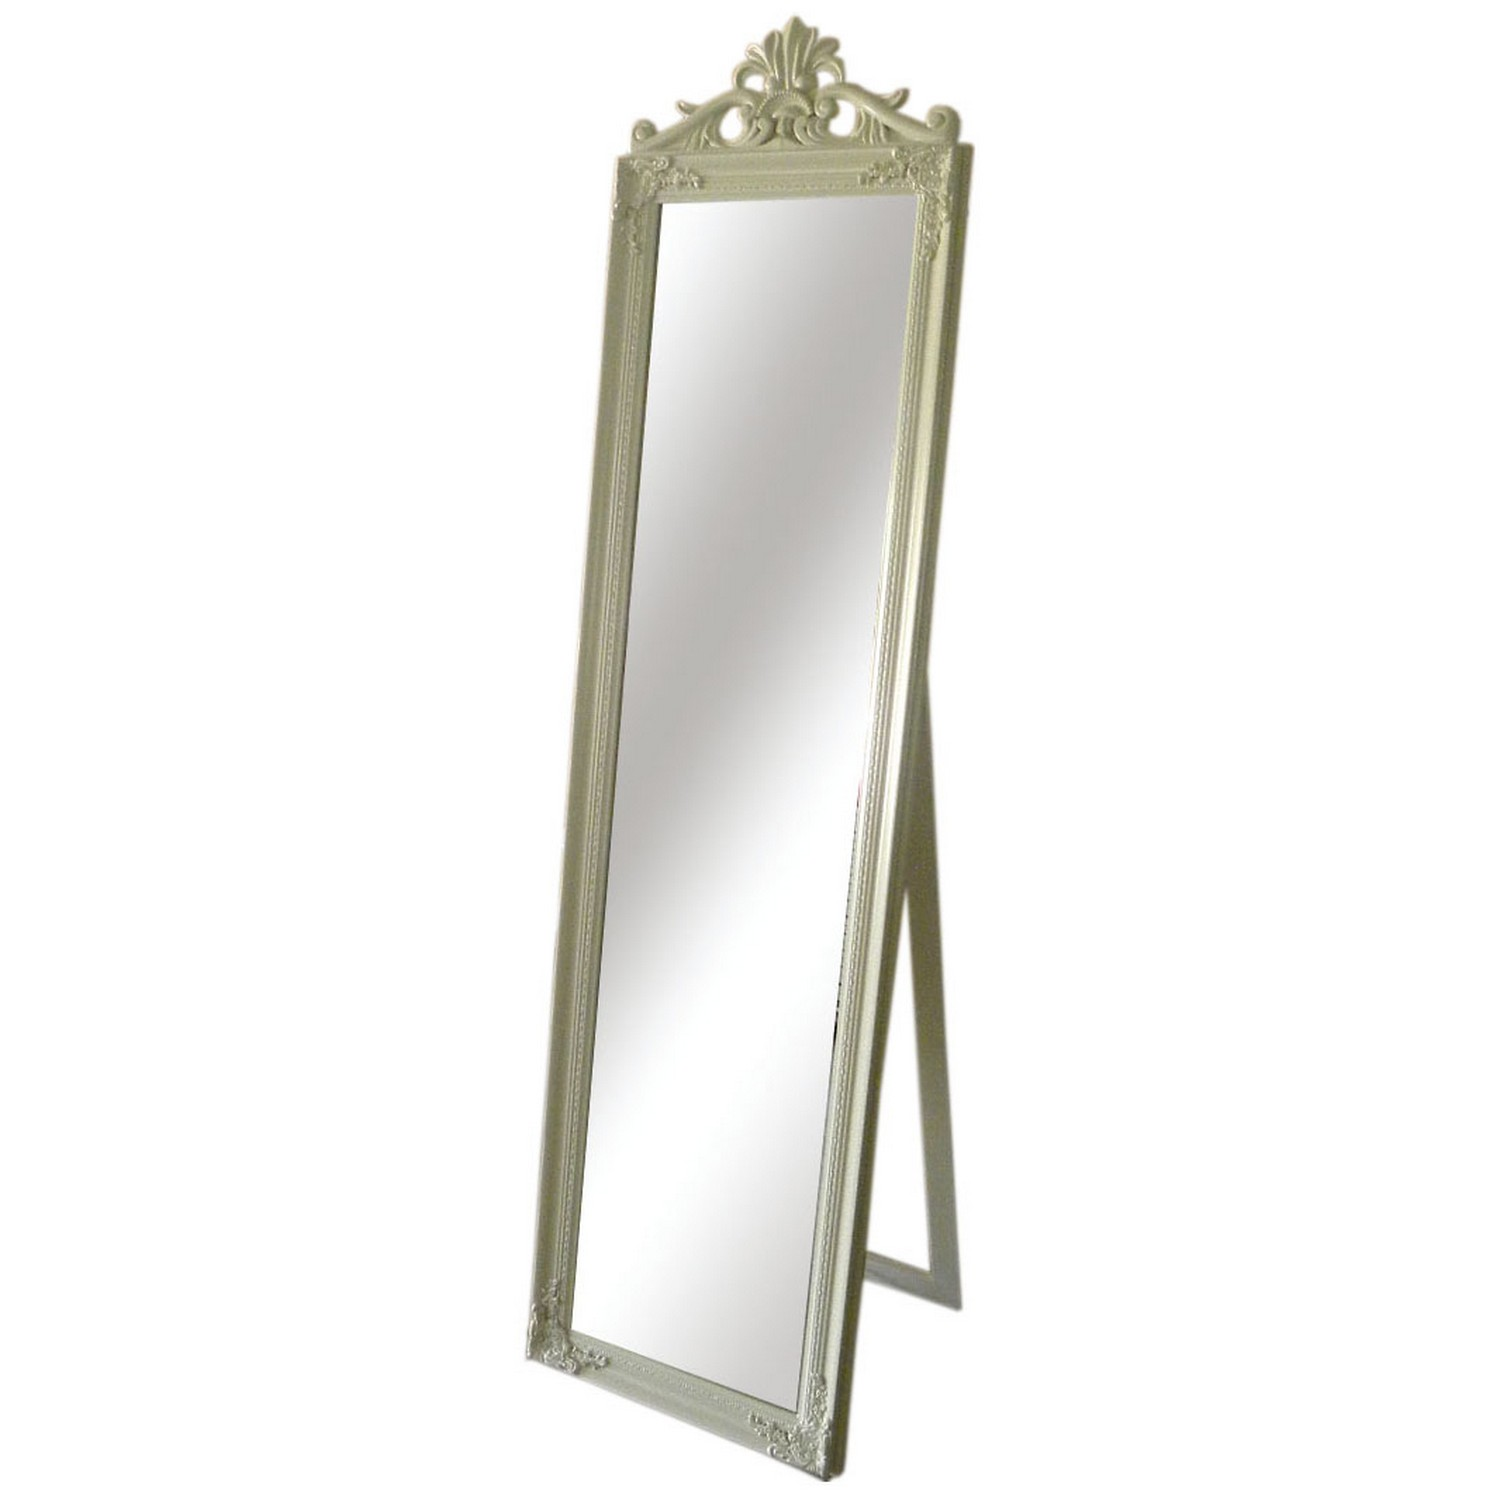 Beautiful floor length mirrors ornate ornament mirror frame can be place at your beautiful bedroom Ideas